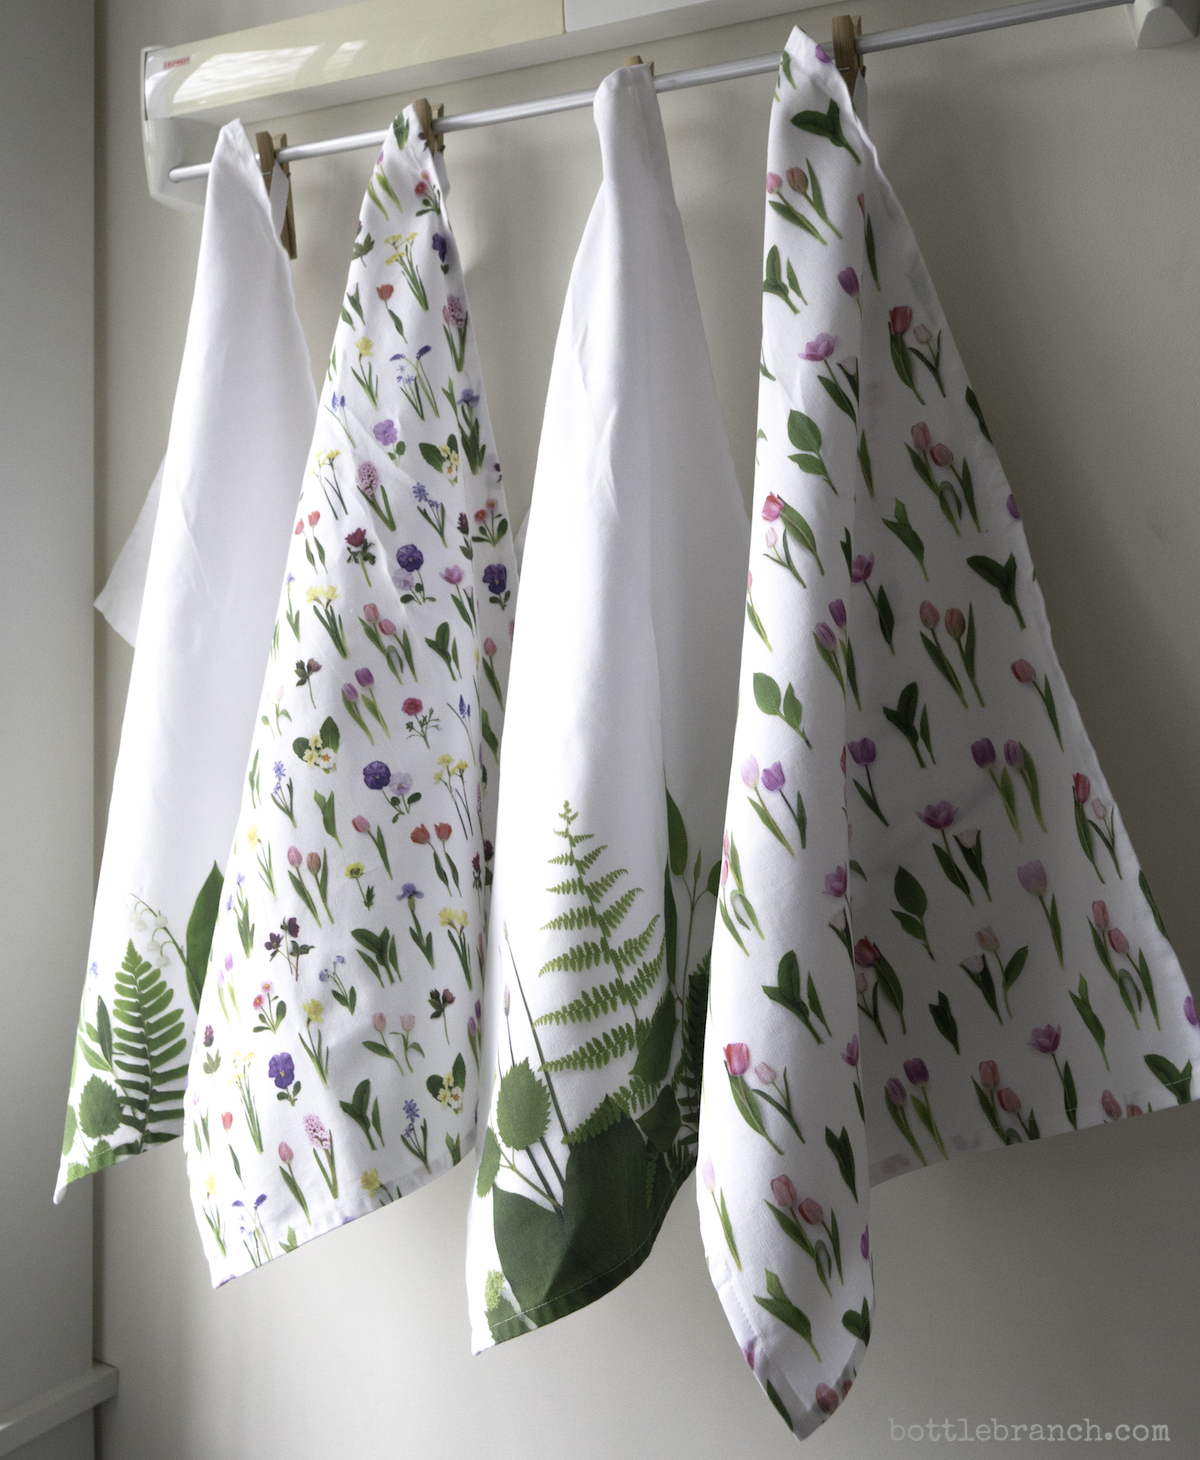 selection of tea towels by bottle branch blog